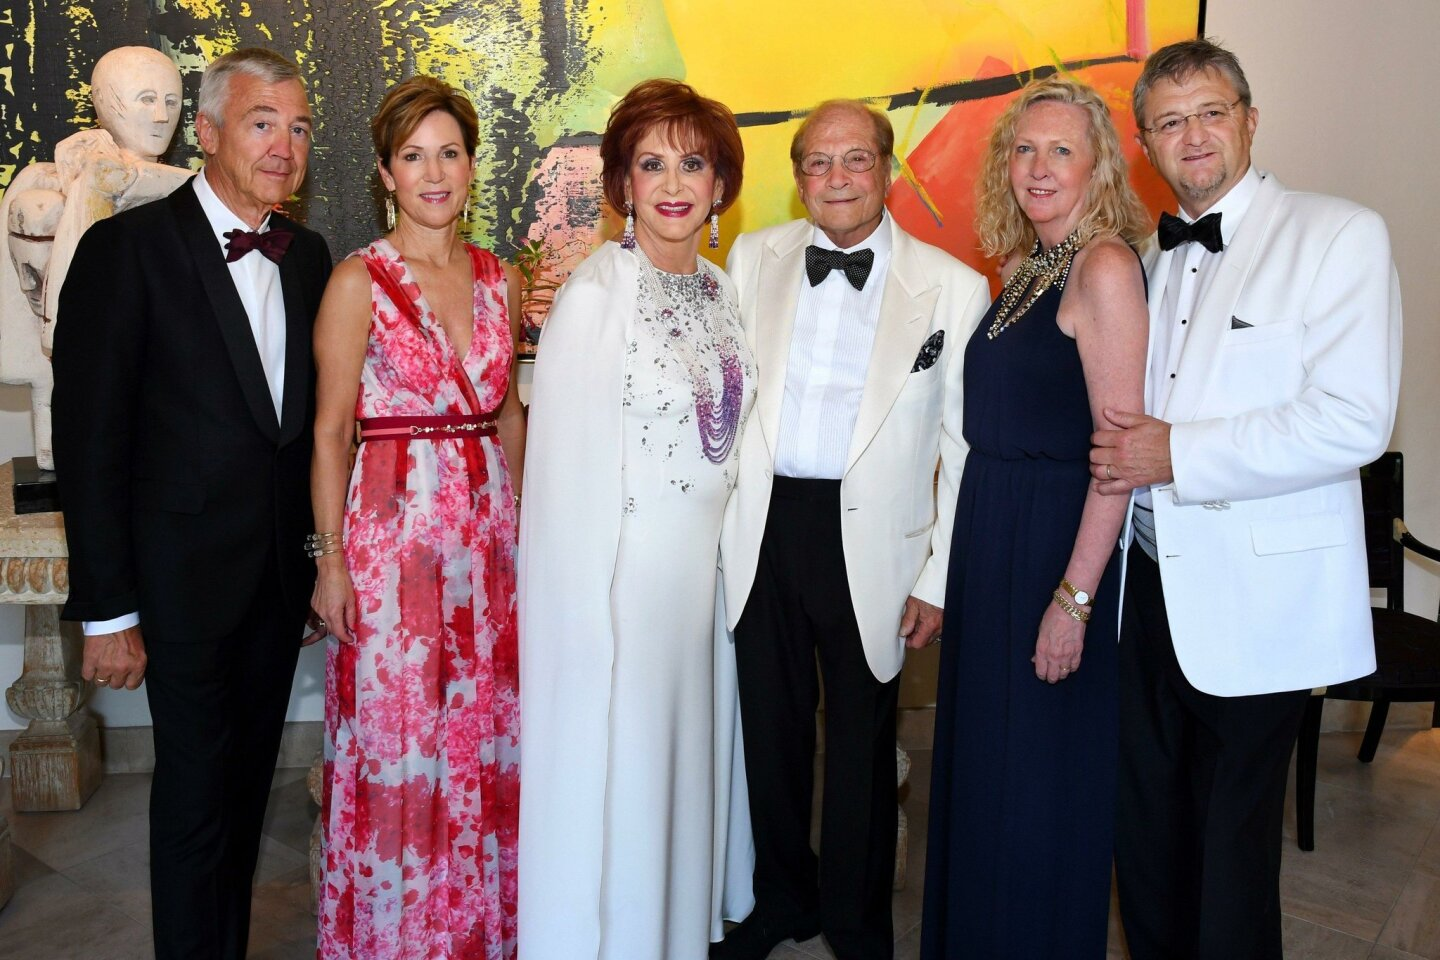 Peter and Sue Wagener (she's gala chair), Iris and Matthew Strauss (gala hosts), Kristin and Thierry Lancino (she's LJMS president/artistic director)